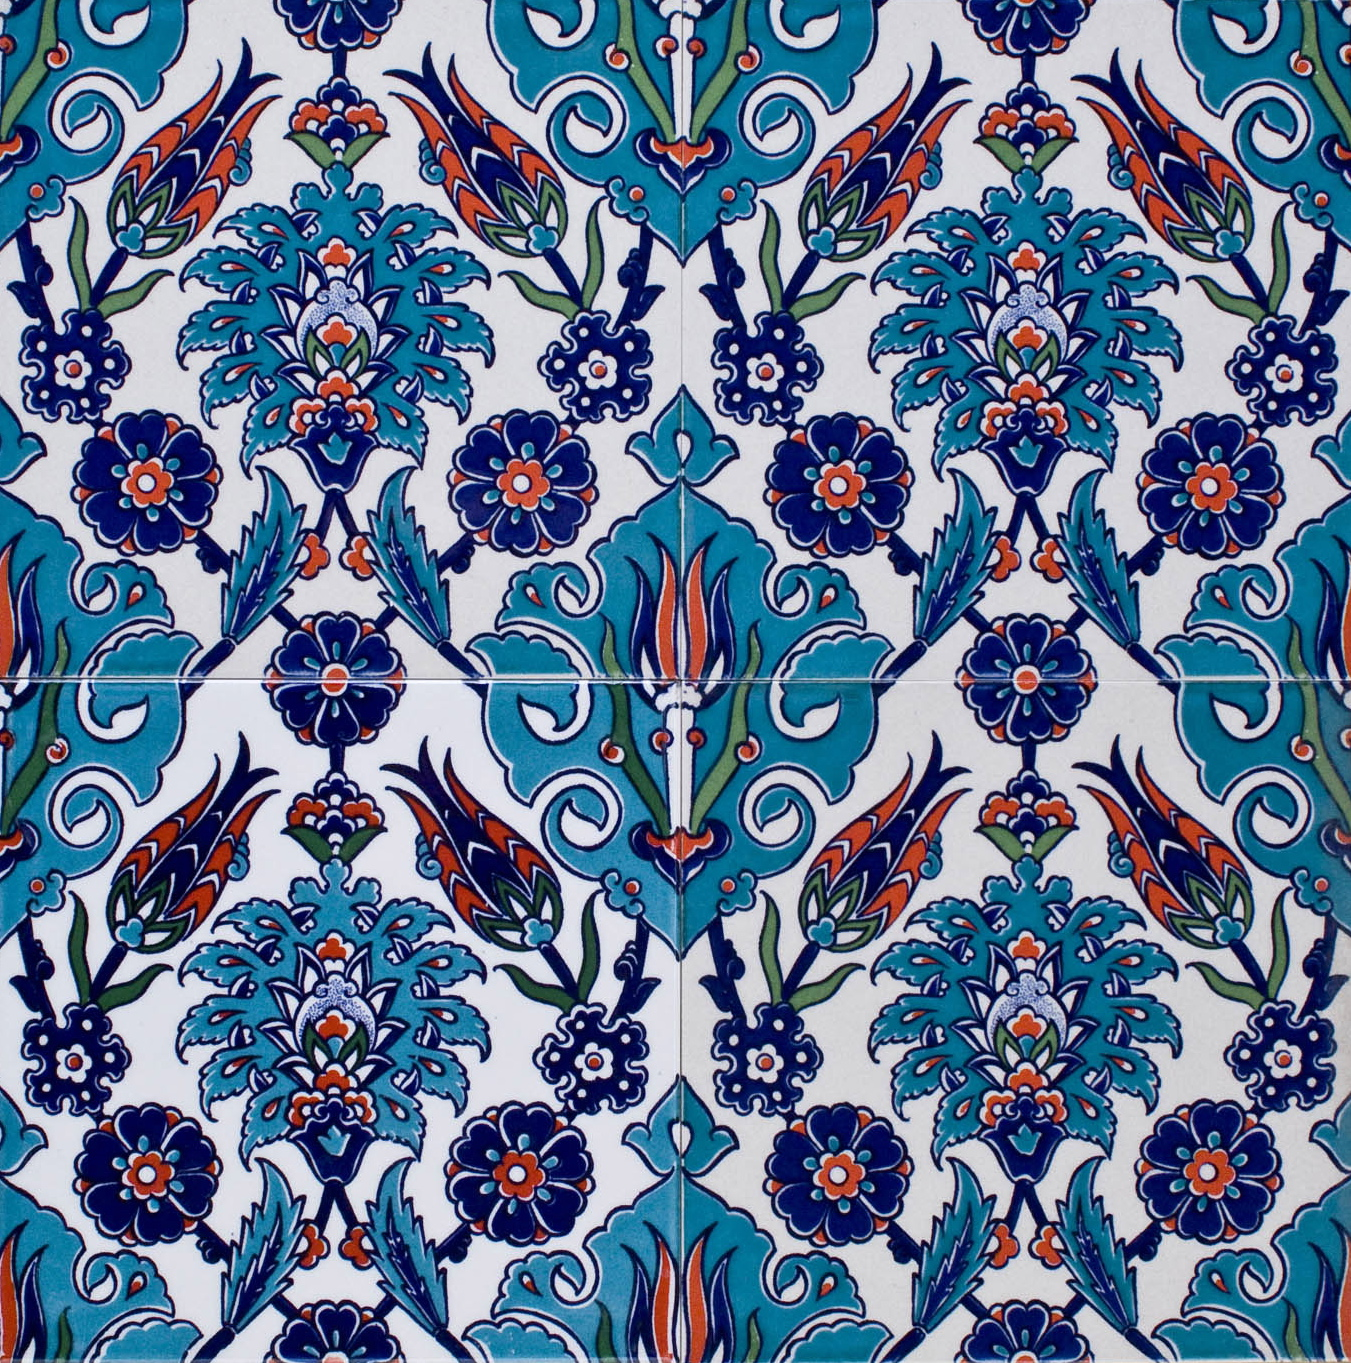 Iznik Turkish Tile F14 005 Eco Tile Factory